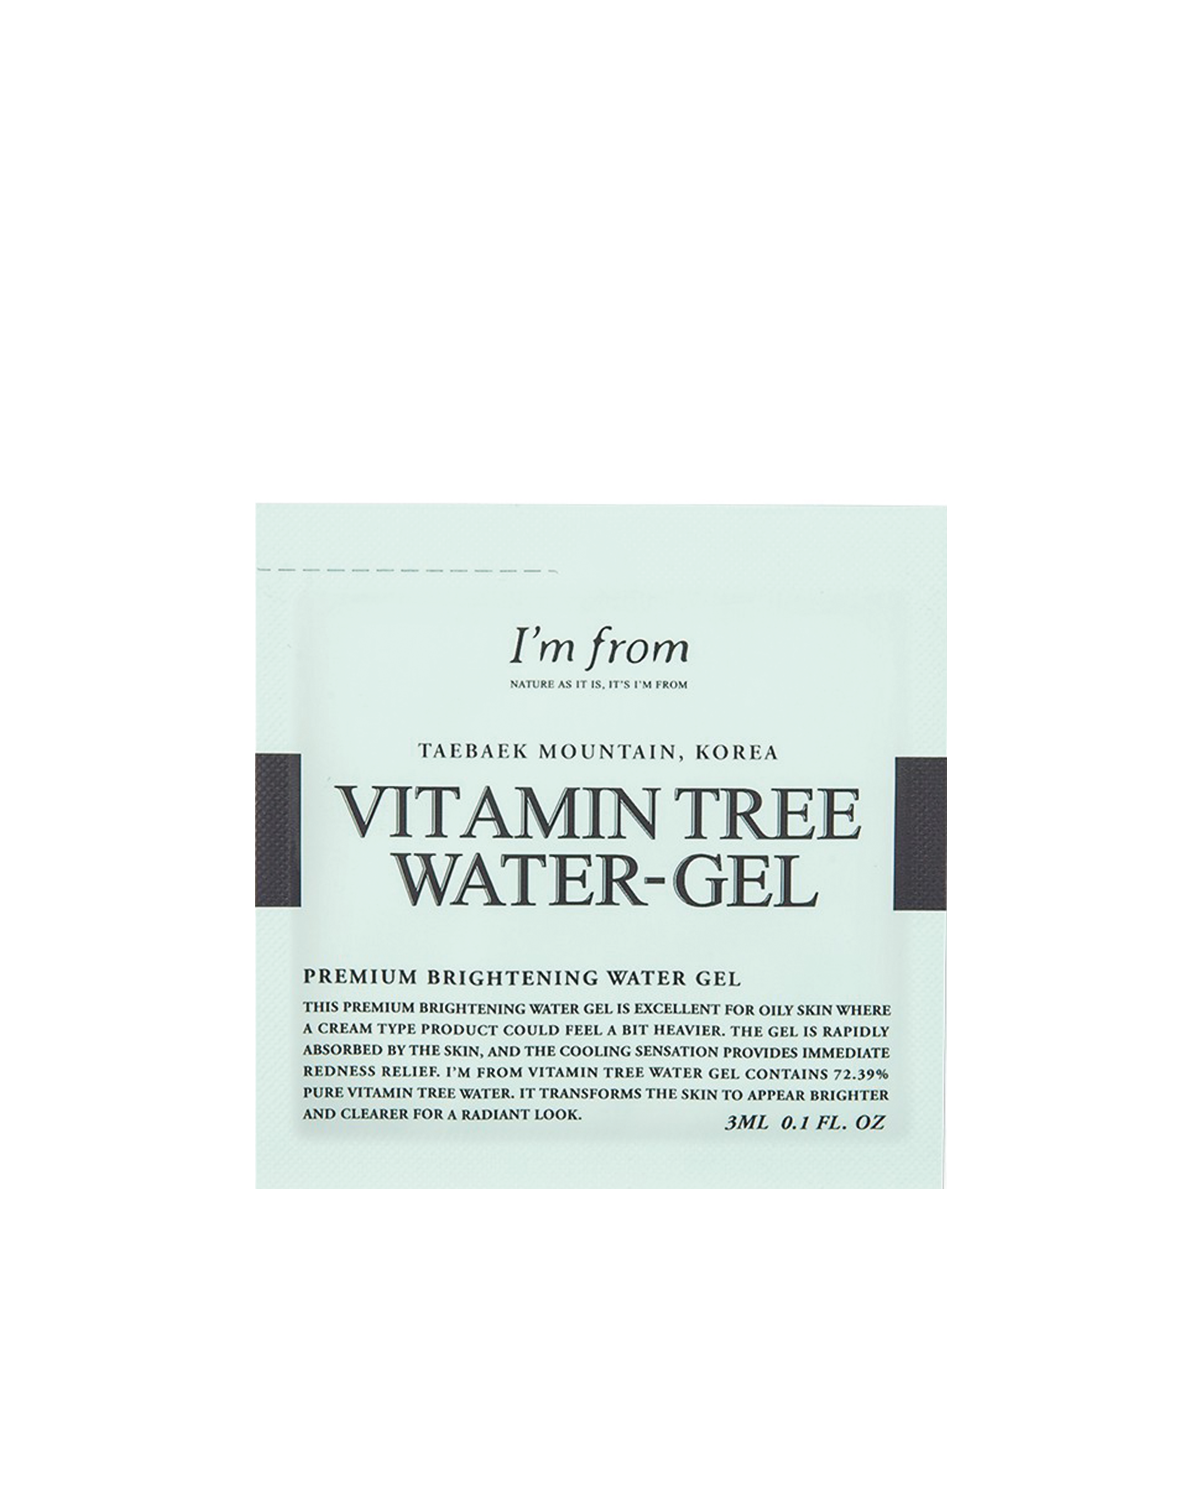 I'M FROM Vitamin Tree Water Gel Sample 3 ml